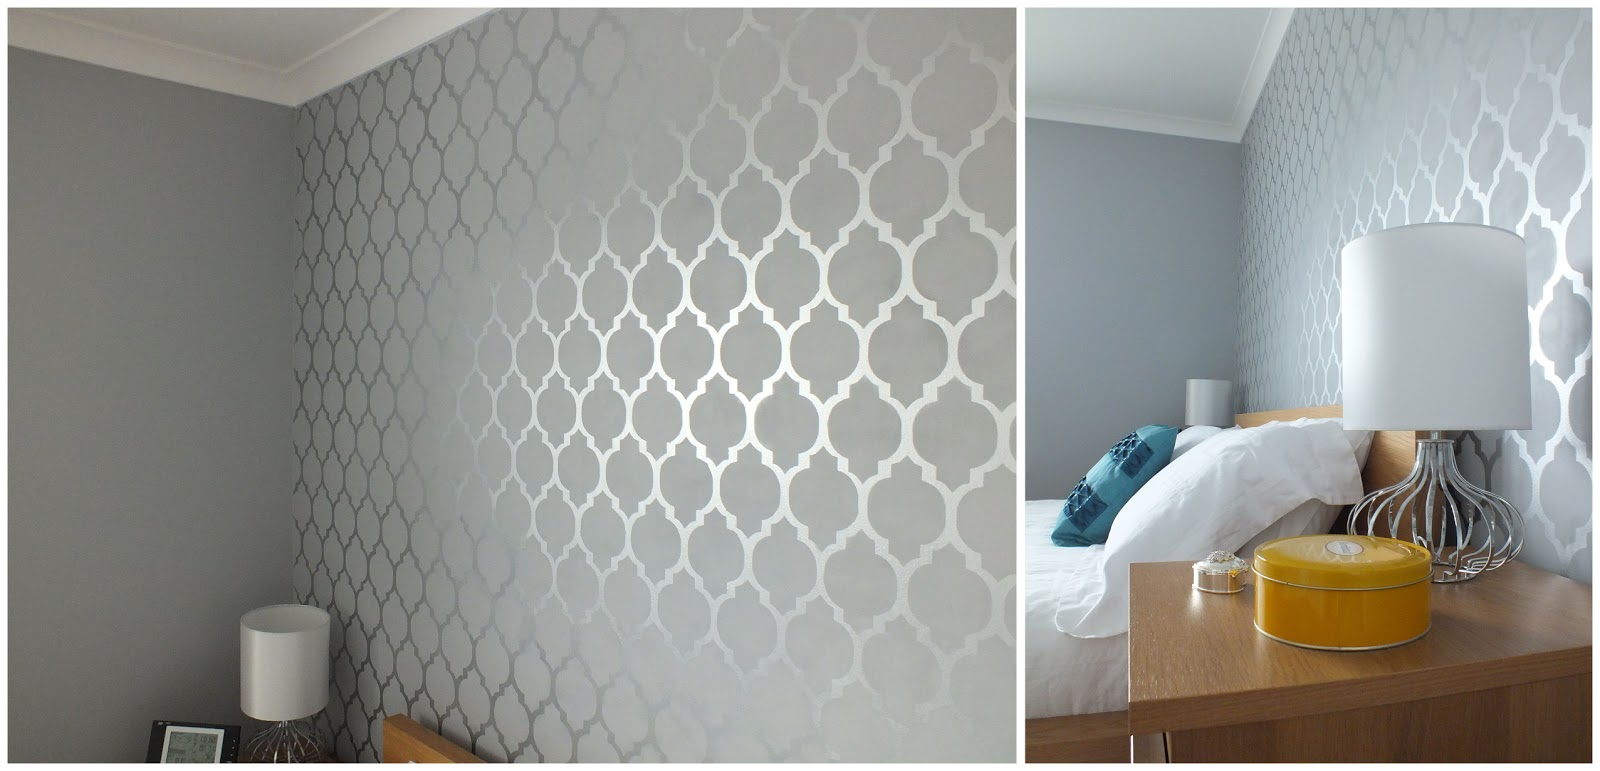 Diy wall stencil tutorial template life in eight for Paint templates for walls